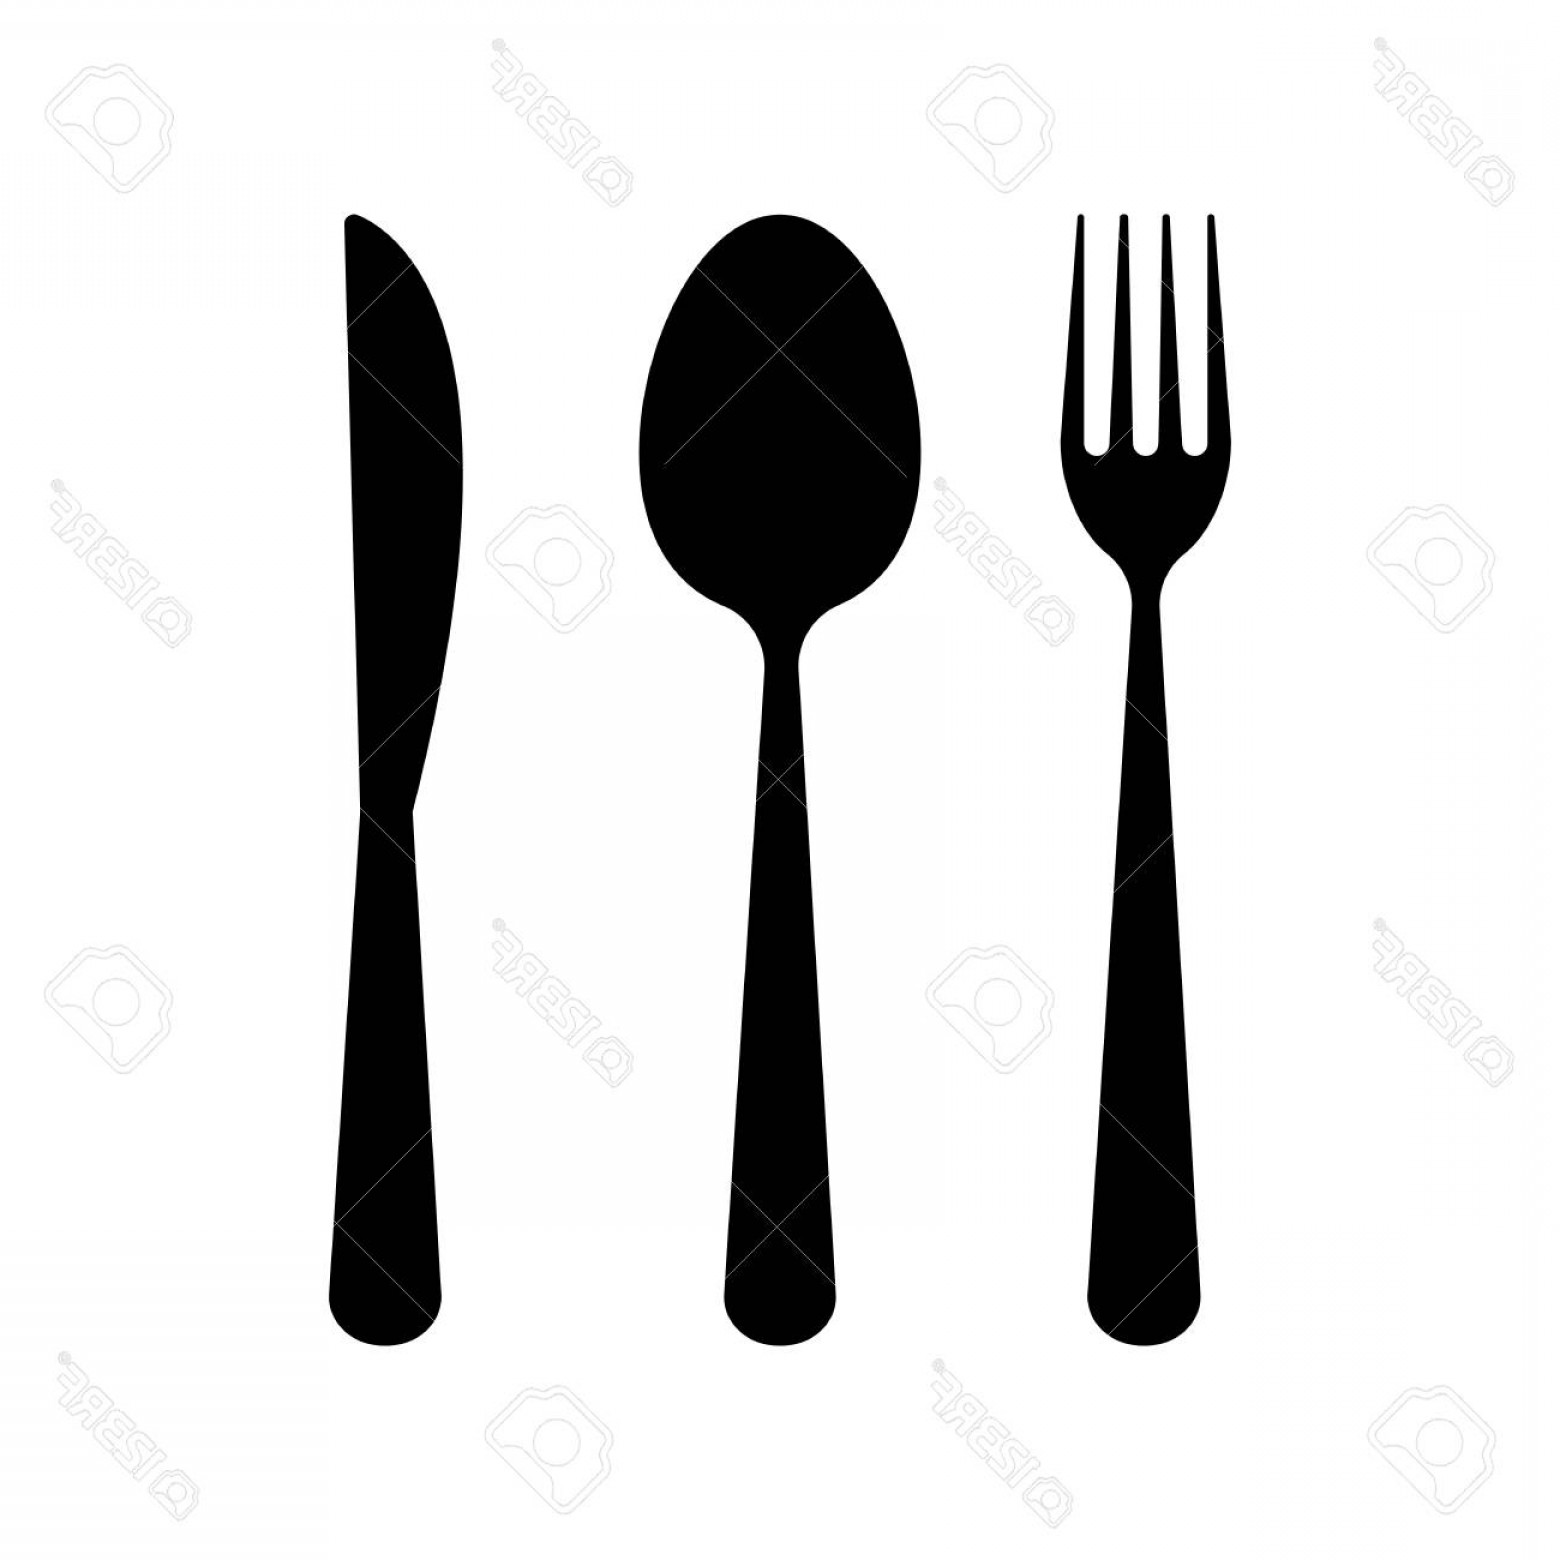 Modern Knife Fork And Spoon Vector Logo: Photostock Vector Fork Spoon And Knife Vector Design Illustration Isolated On White Background